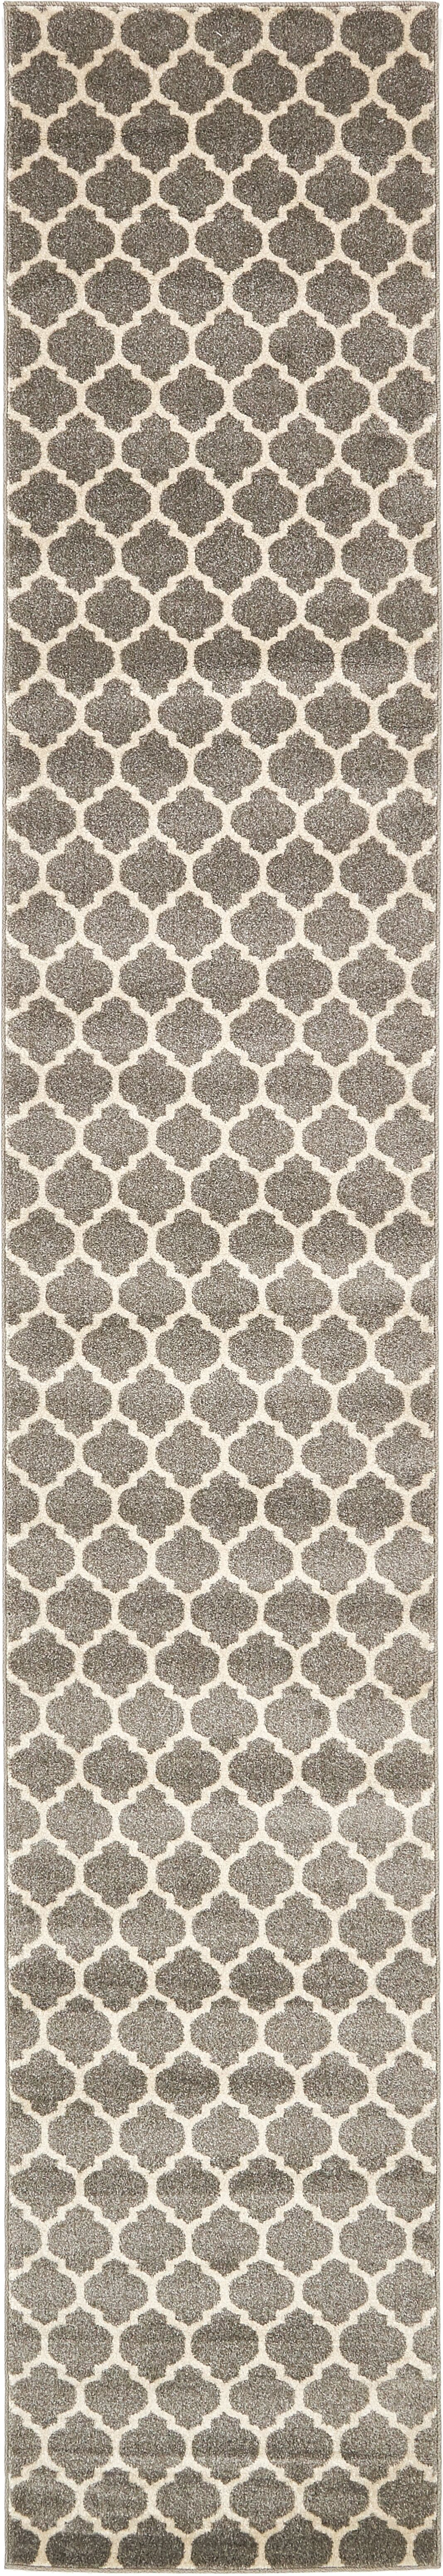 Moore Gray Area Rug Rug Size: Runner 2'7